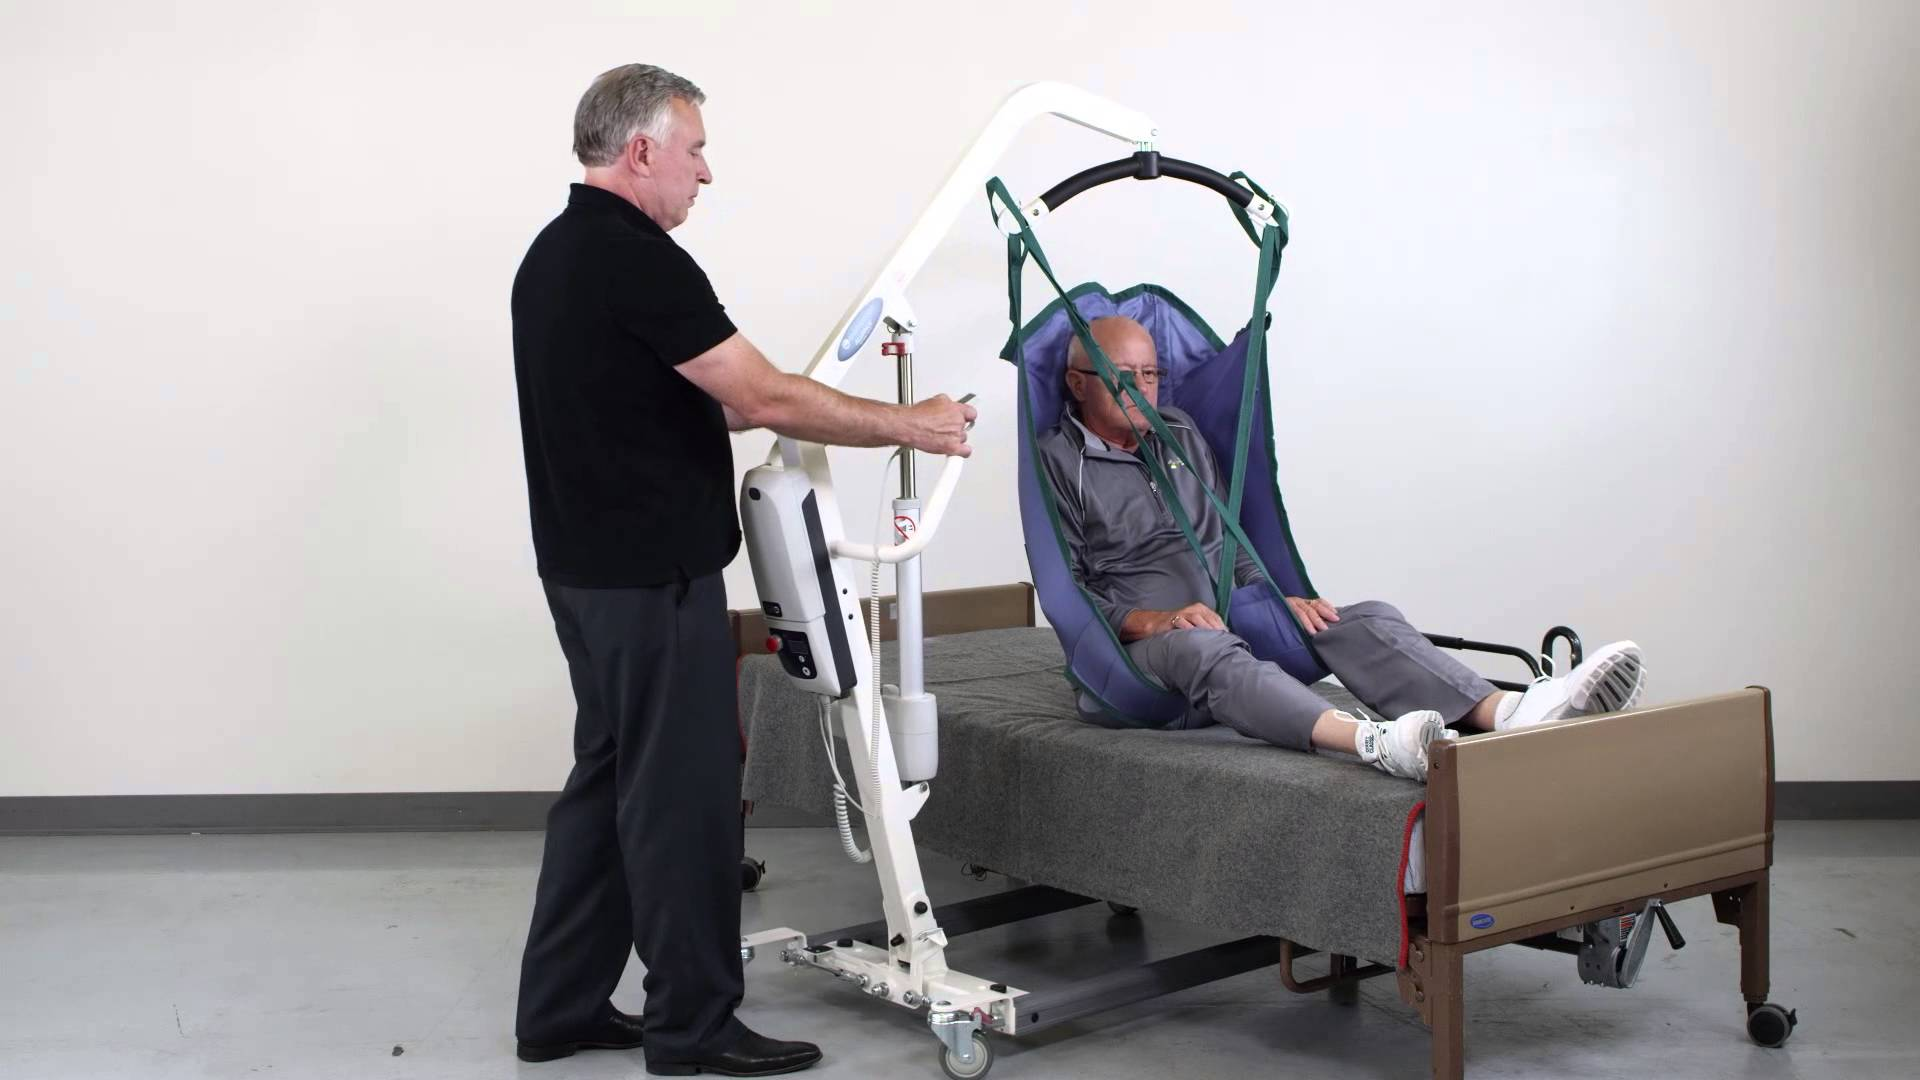 Portable Chair Lift Client Lift Transfer From Bed To Chair Acorn Stairlifts Home